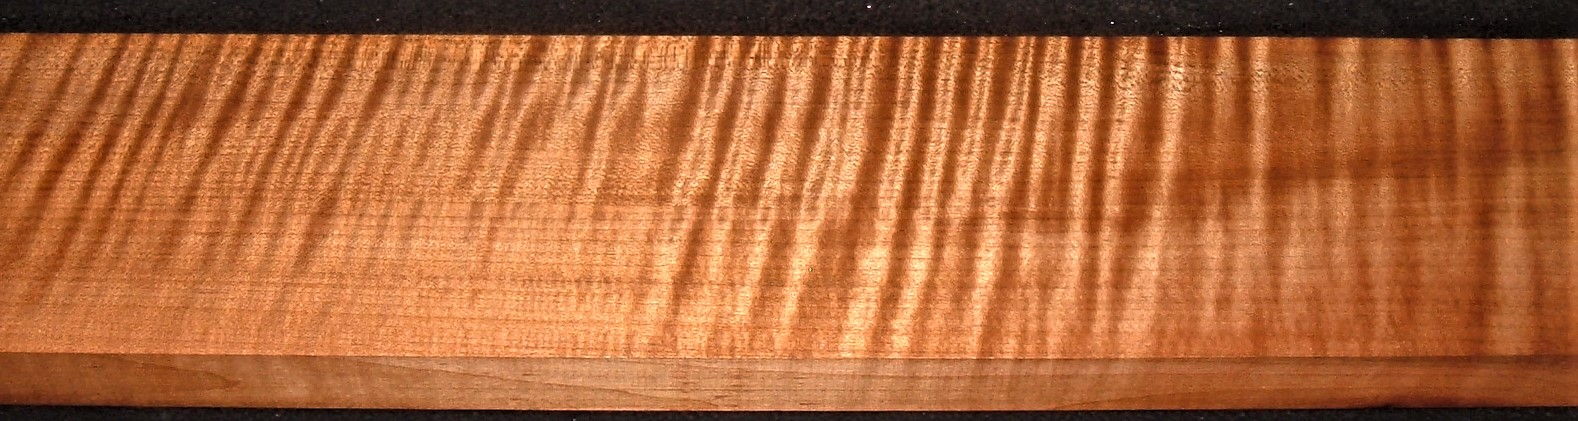 QRM2010-376JK, 1-1/4x5x42, Quartersawn Roasted Curly Maple